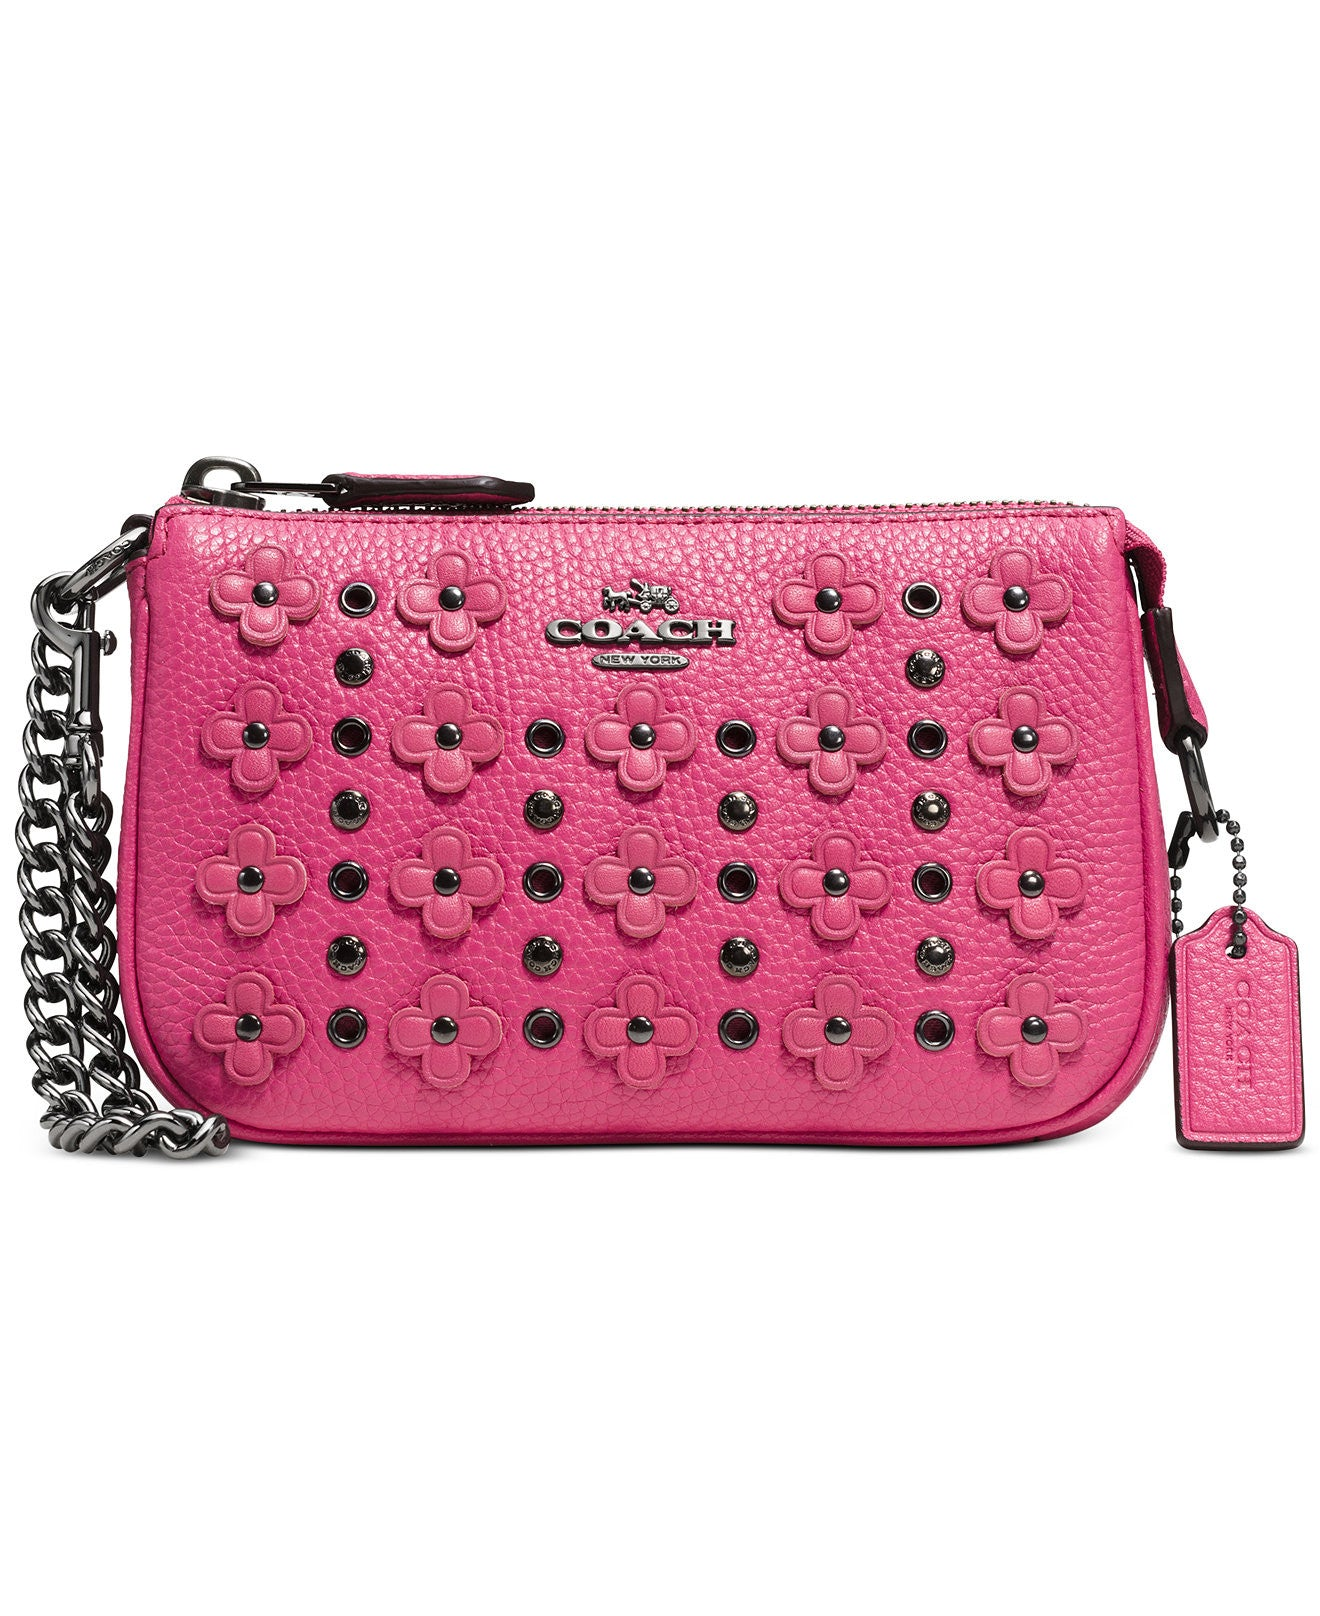 Coach Nolita Wristlet 15 In Floral Rivets Leather Pink Pit A